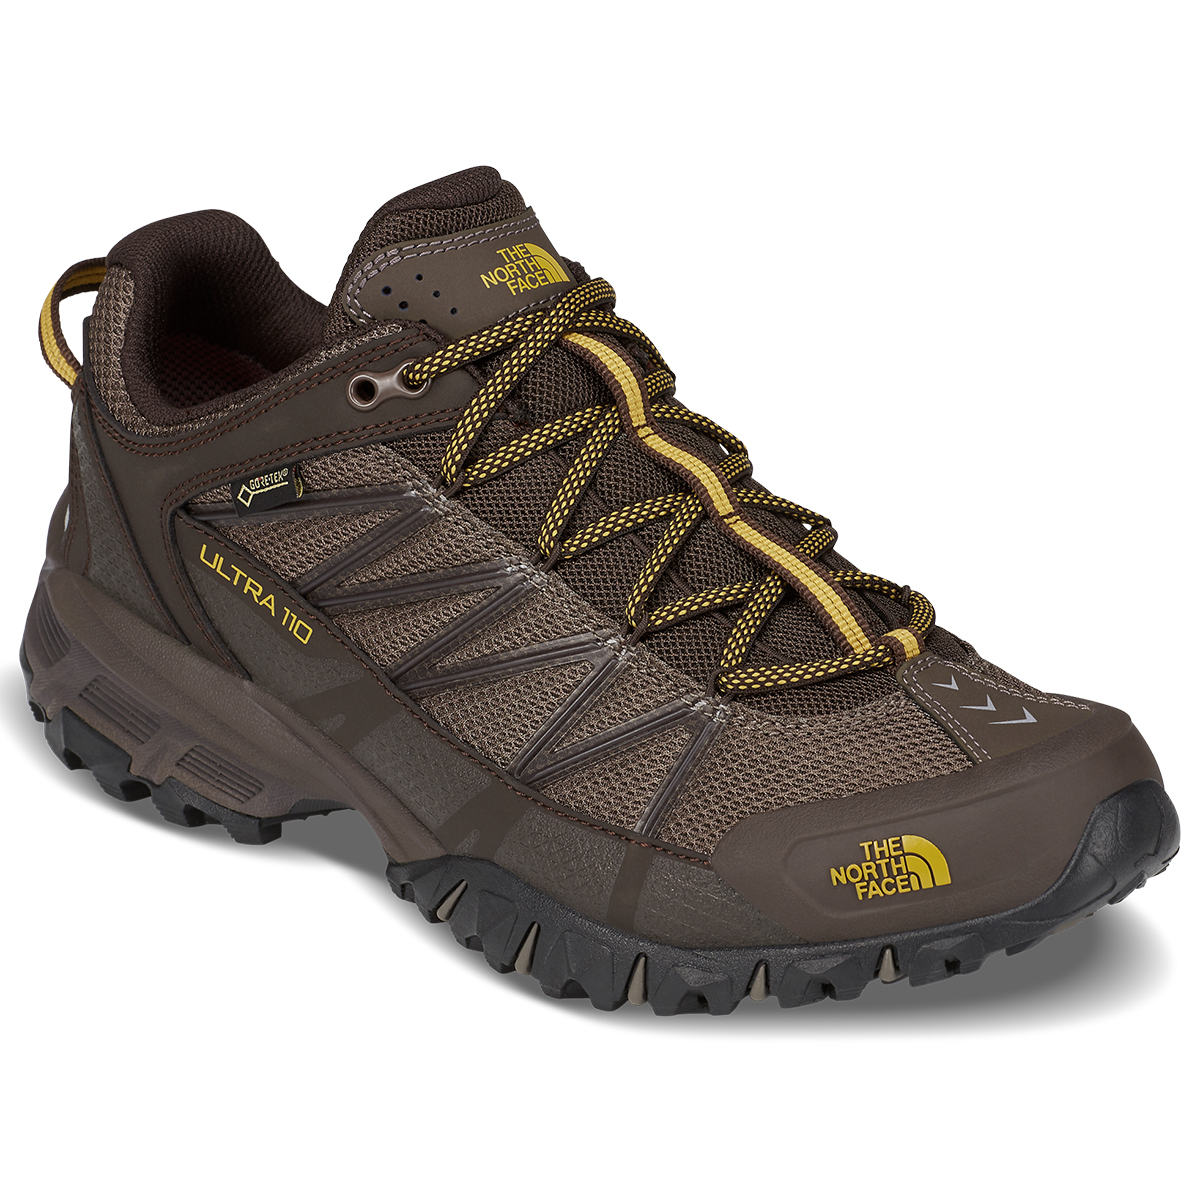 The North Face Men's Ultra 110 Gtx Waterproof Trail Running Shoes - Brown, 9